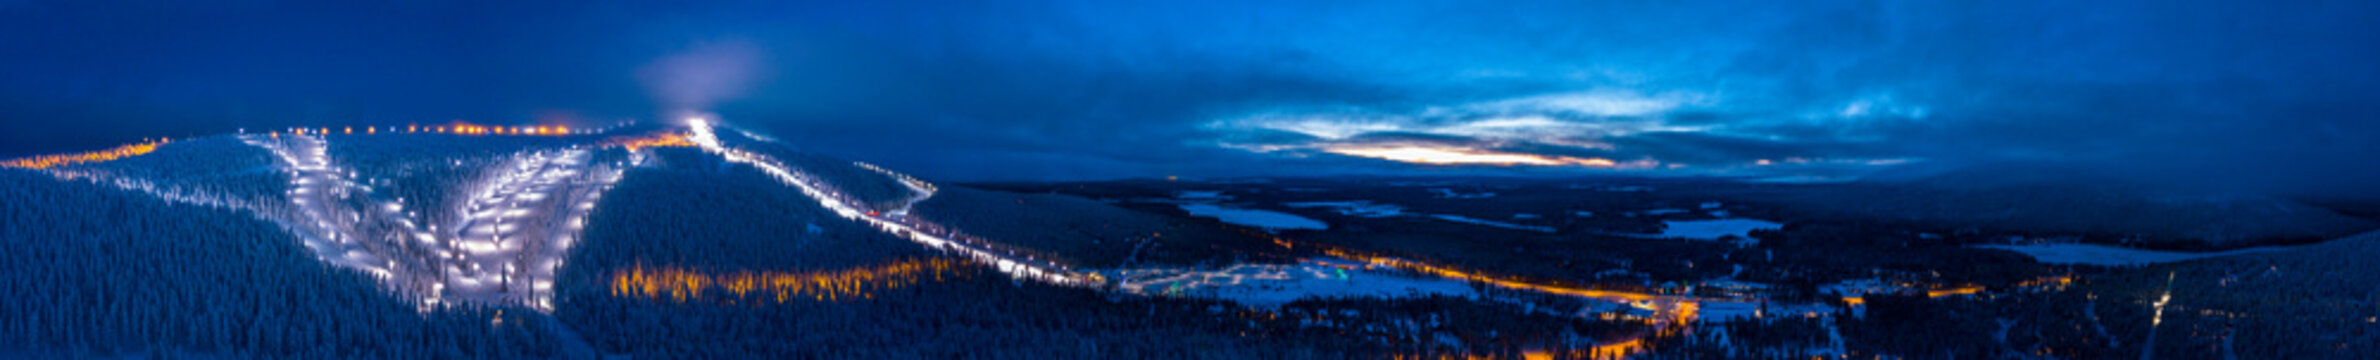 Panoramic cloudy sunset over the ski slopes of Levi, Kittilä, Finland.